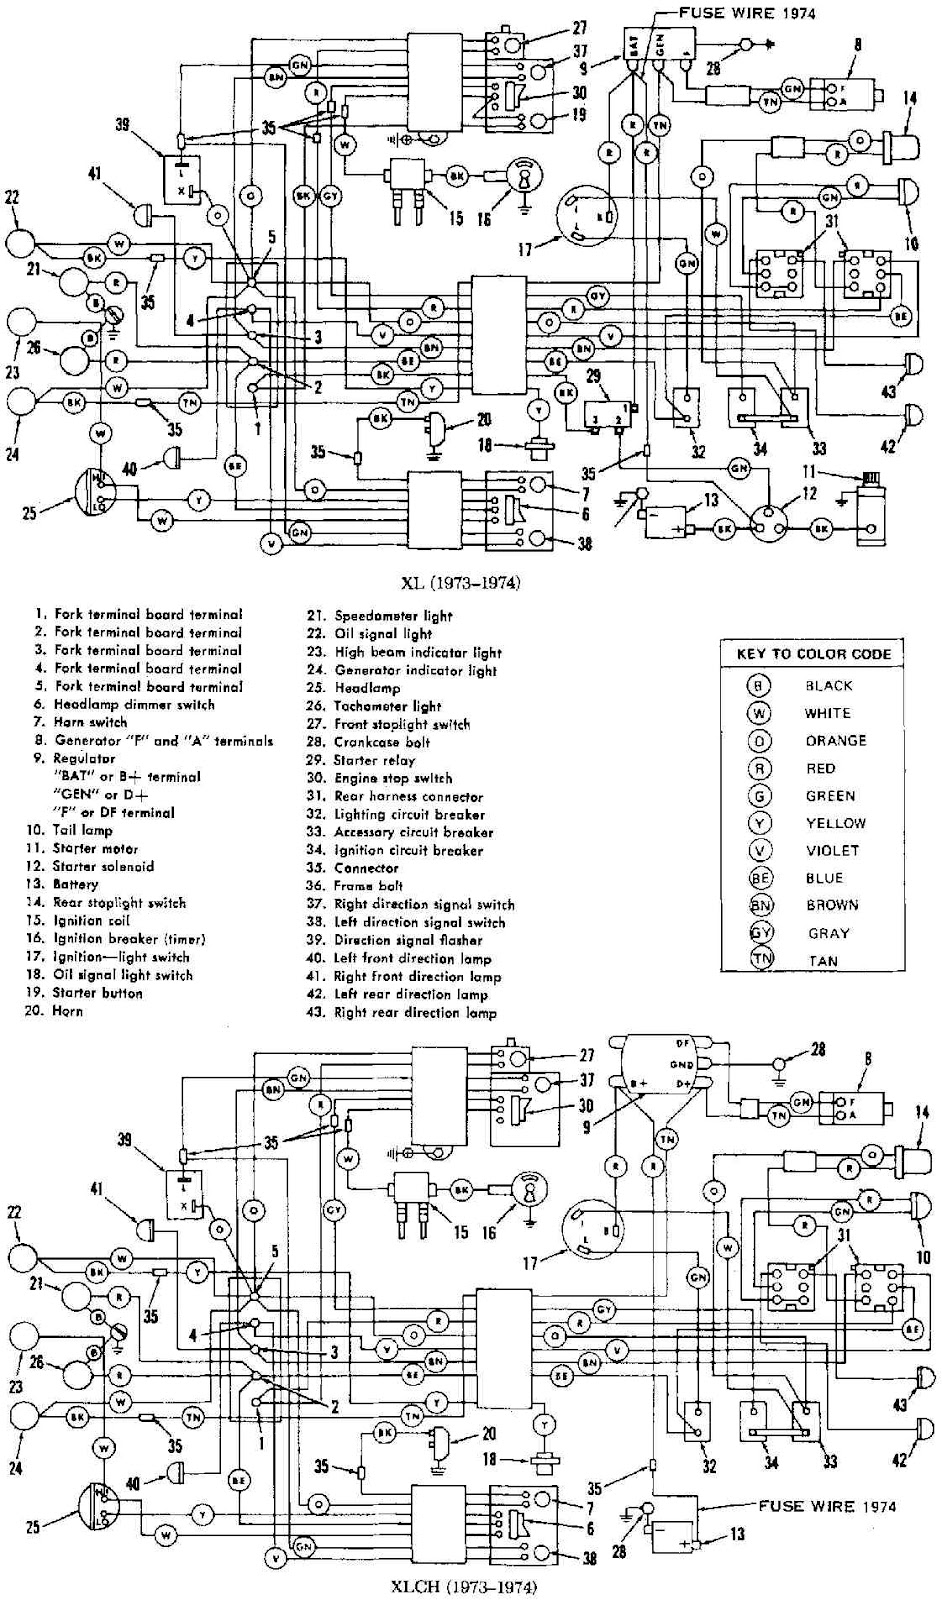 Harley Davidson Xl Xlch Motorcycle Electrical Wiring Diagram on 1998 Softail Wiring Diagram